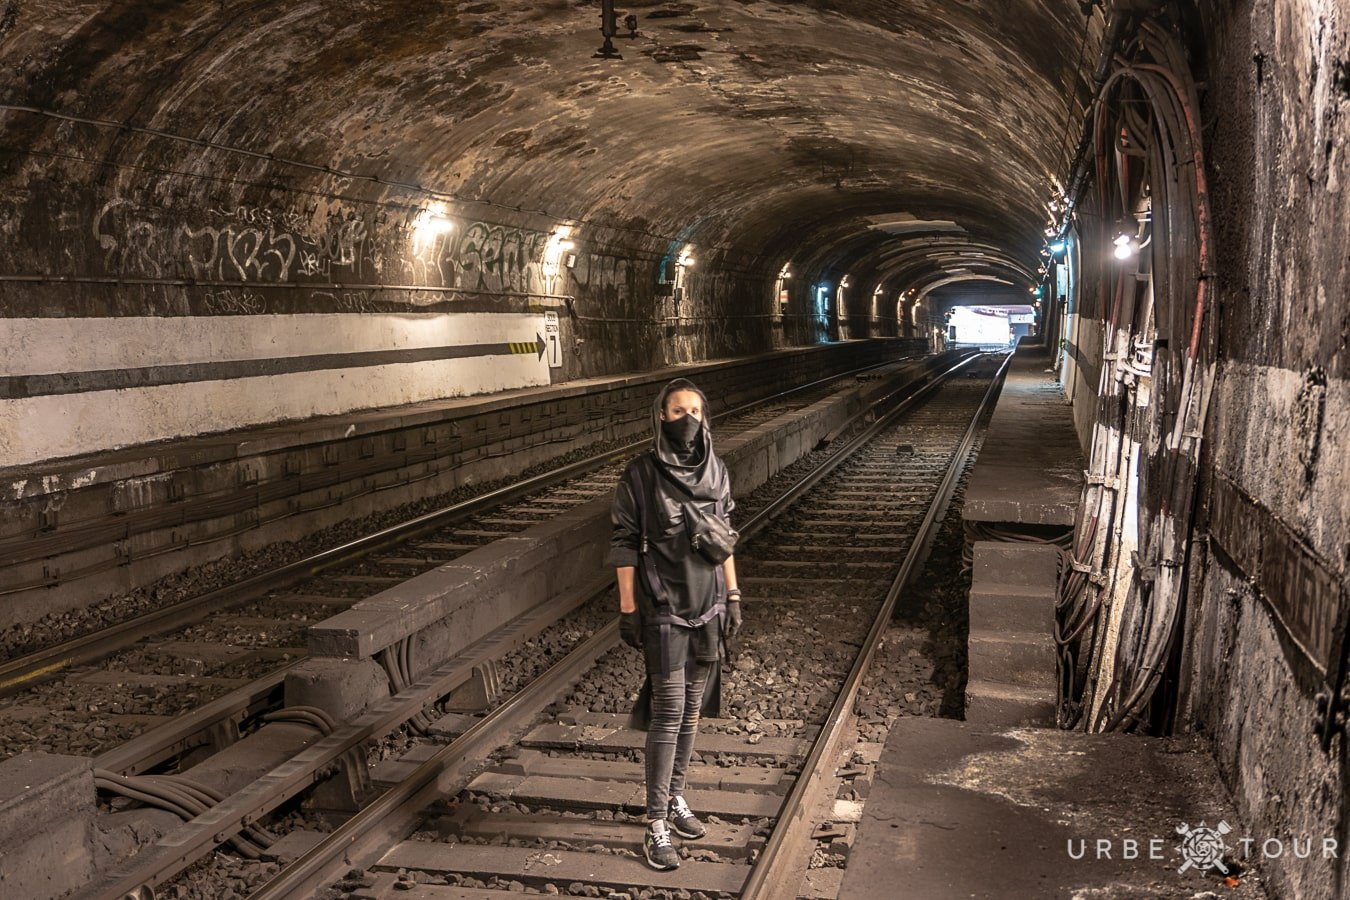 paris-metro-exploration-2018-33-min EXPLORING PARIS METRO: THREE LINES CROSSING CAMERA UNDER OPERA